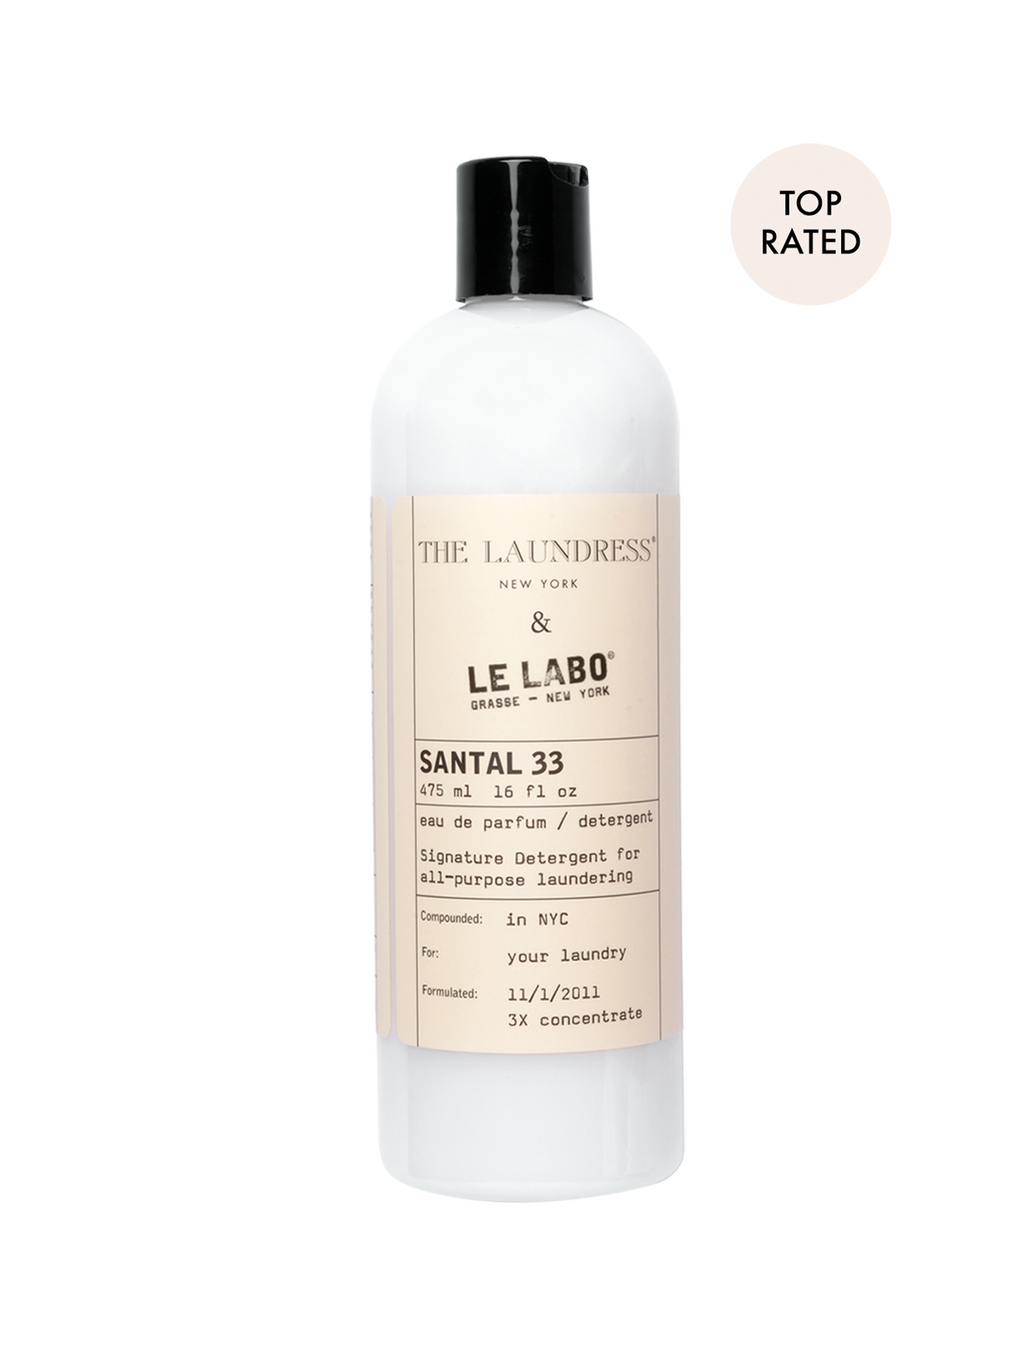 The Laundress Le Labo Signature Detergent 16 fl oz